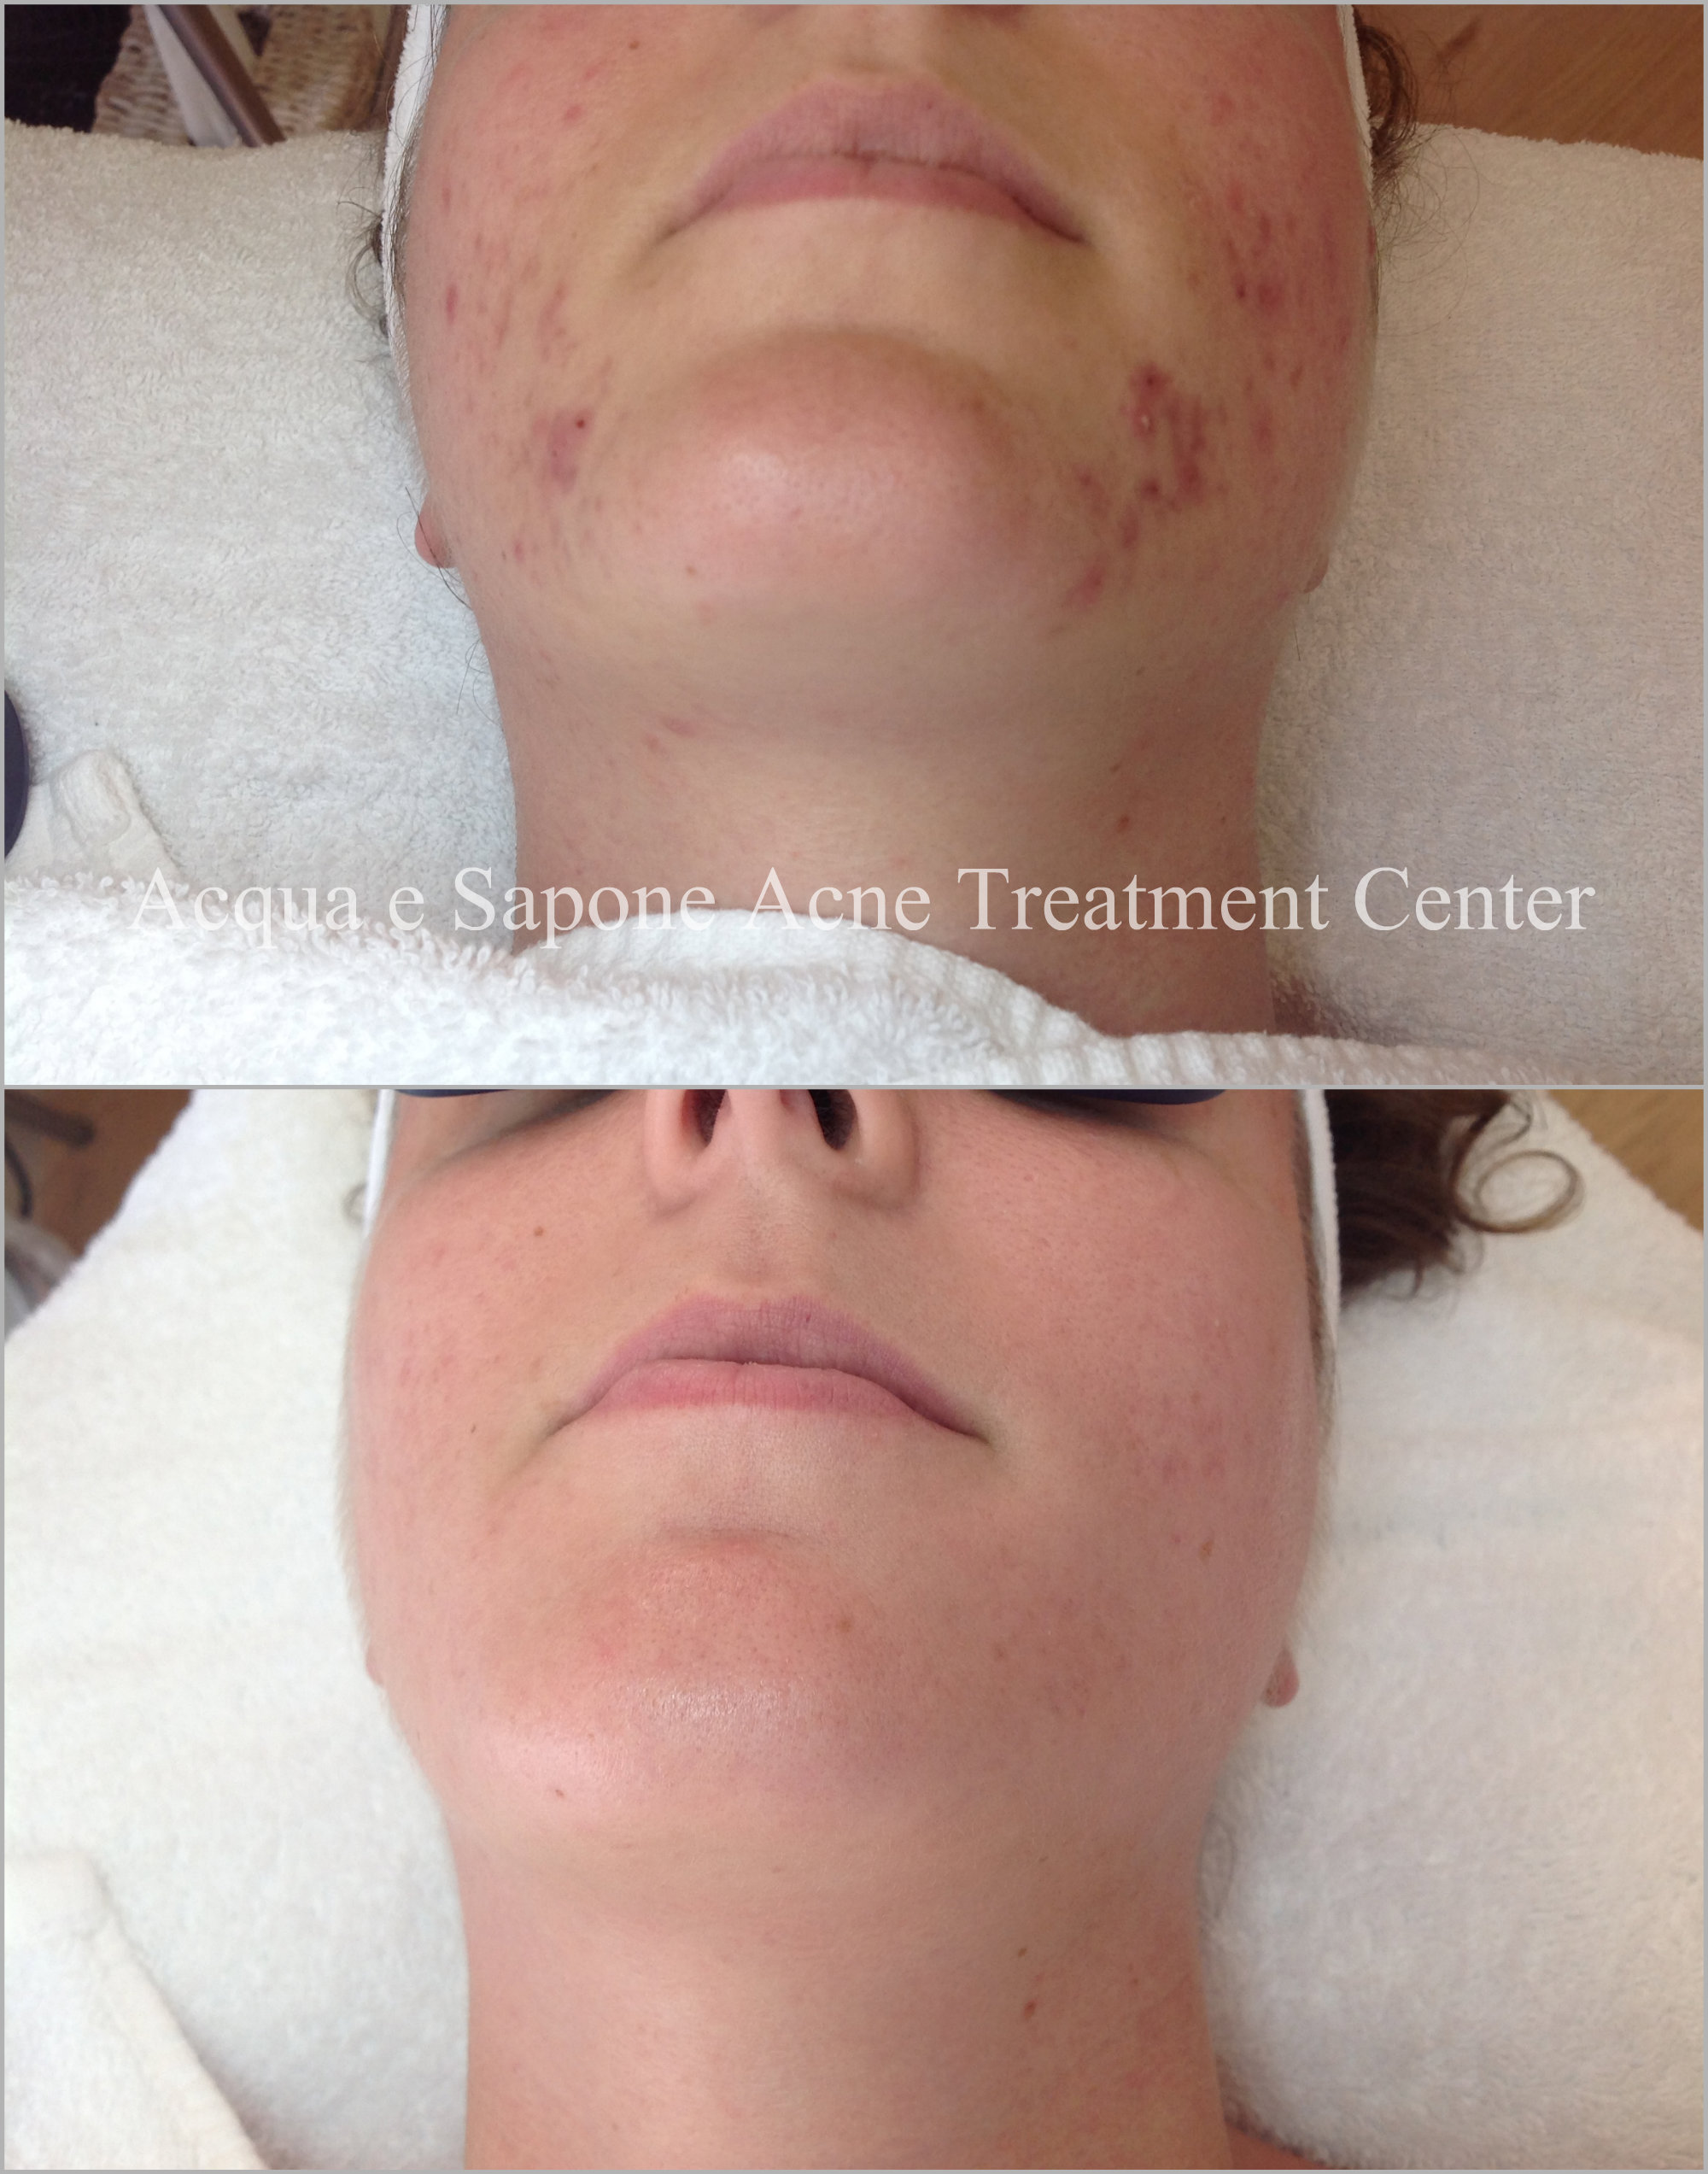 Dark marks from acne caused by Post-Inflammatory Hyperpigmentation treated with customized  Acqua e Sapone products  and  peels .